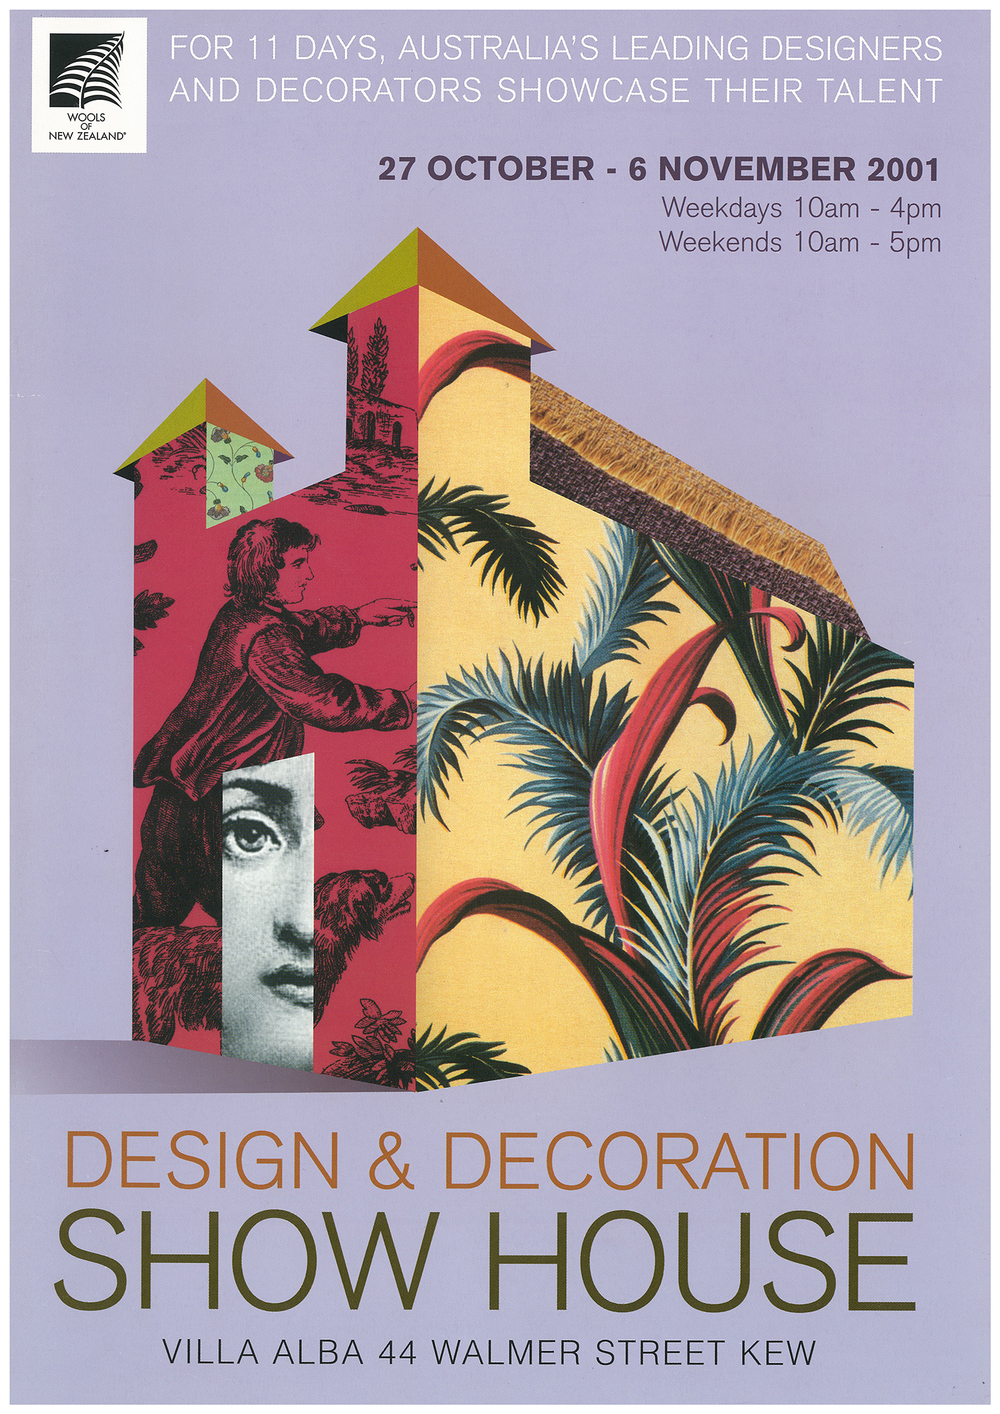 Design & Decoration Show House